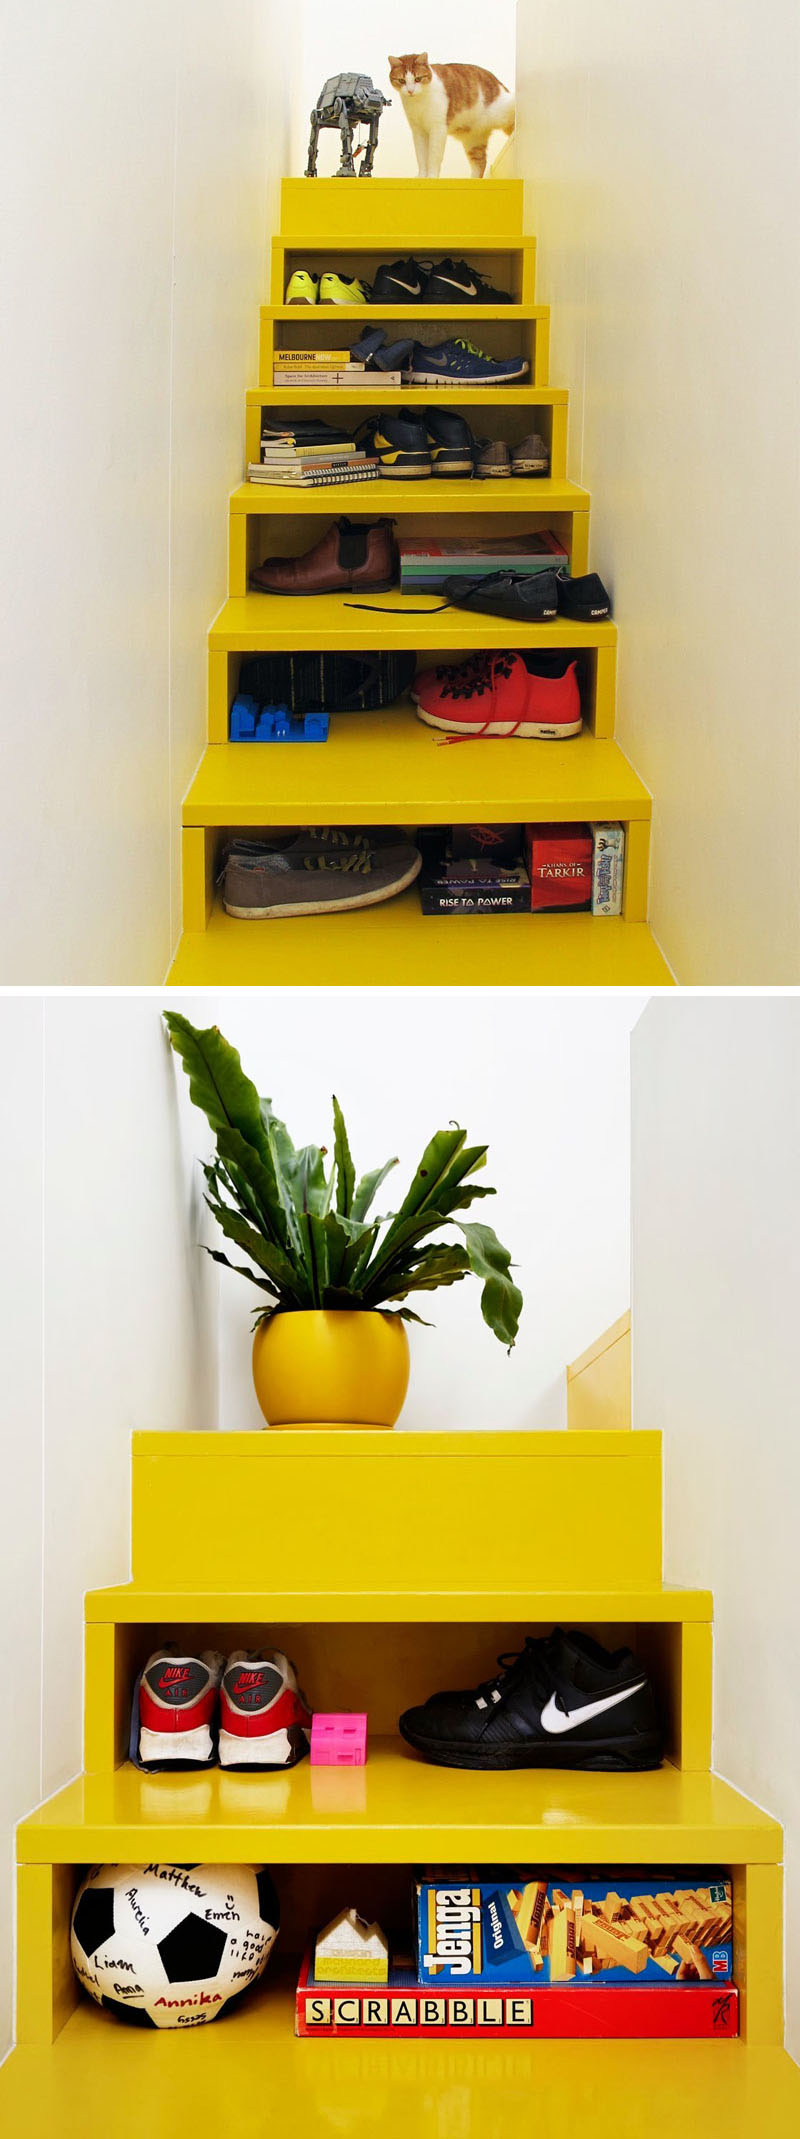 yellow-stairs-with-open-treads-storage-070417-1245-03